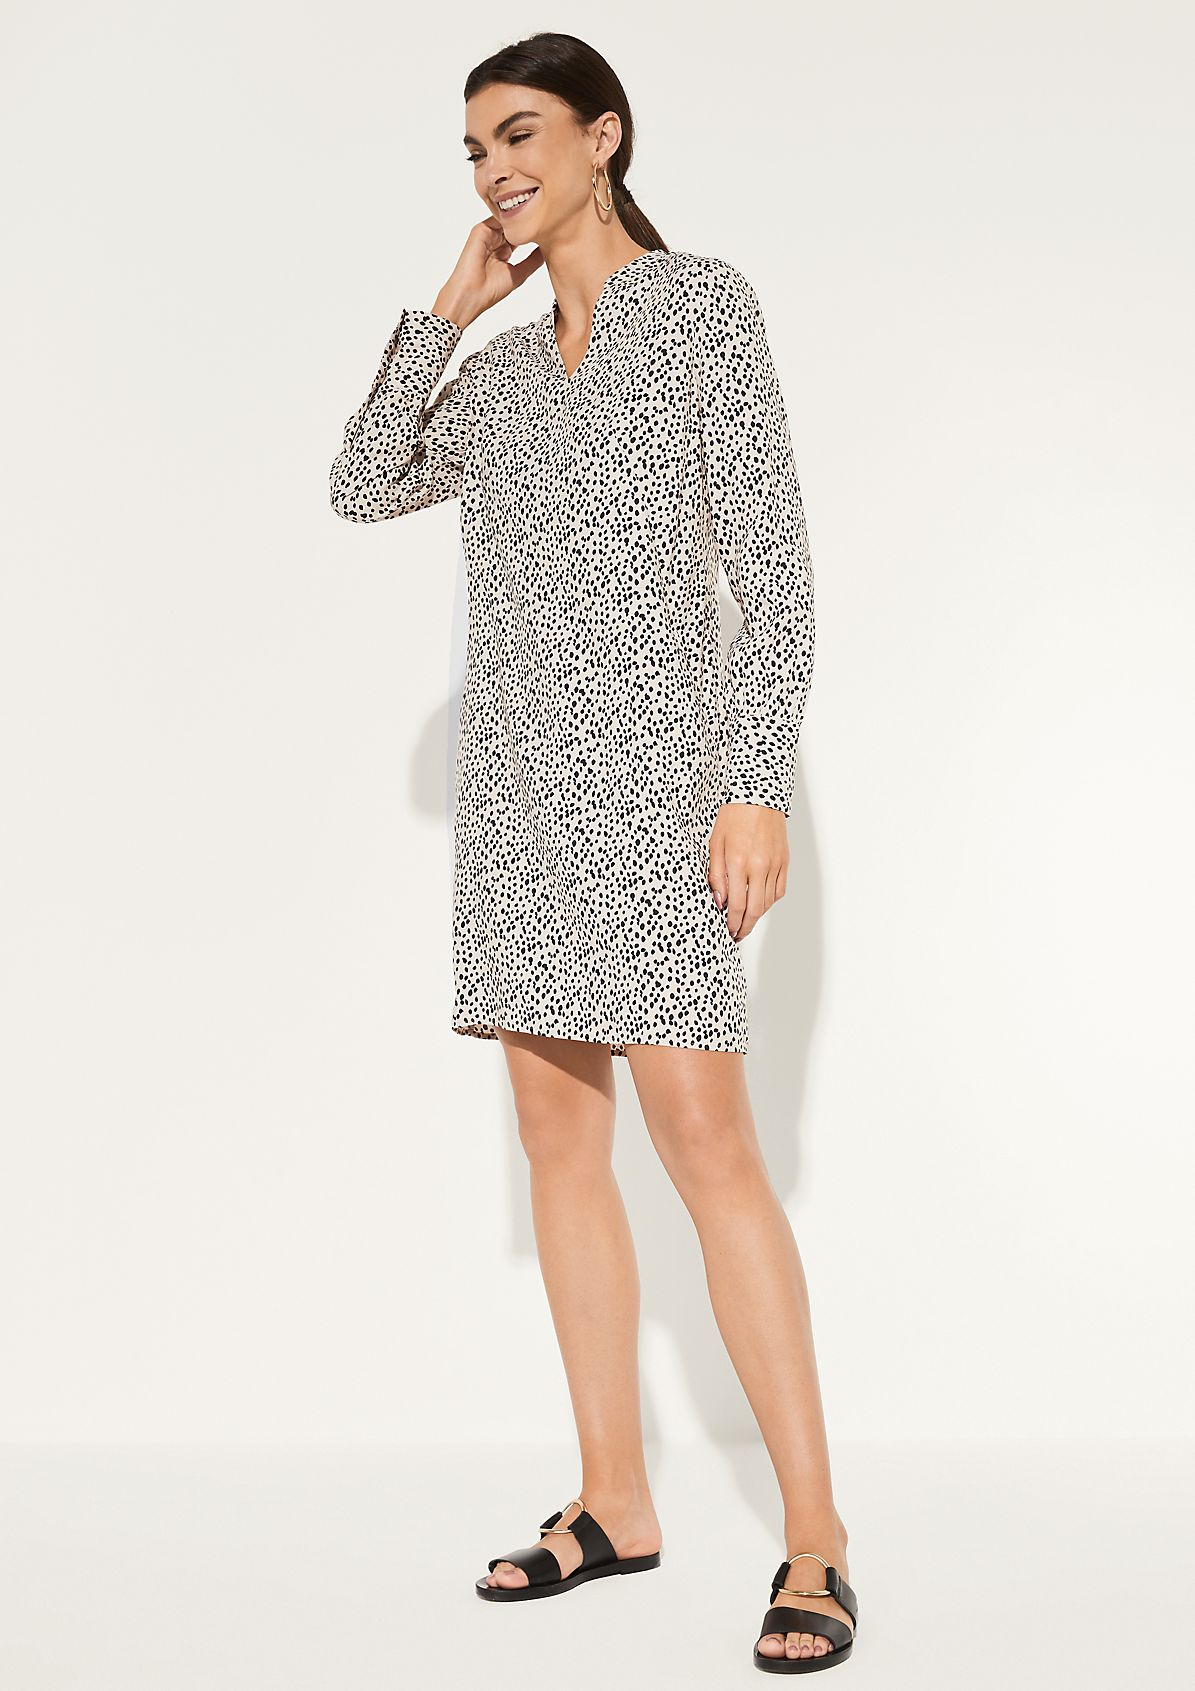 Lightweight summer dress with a decorative all-over pattern from comma